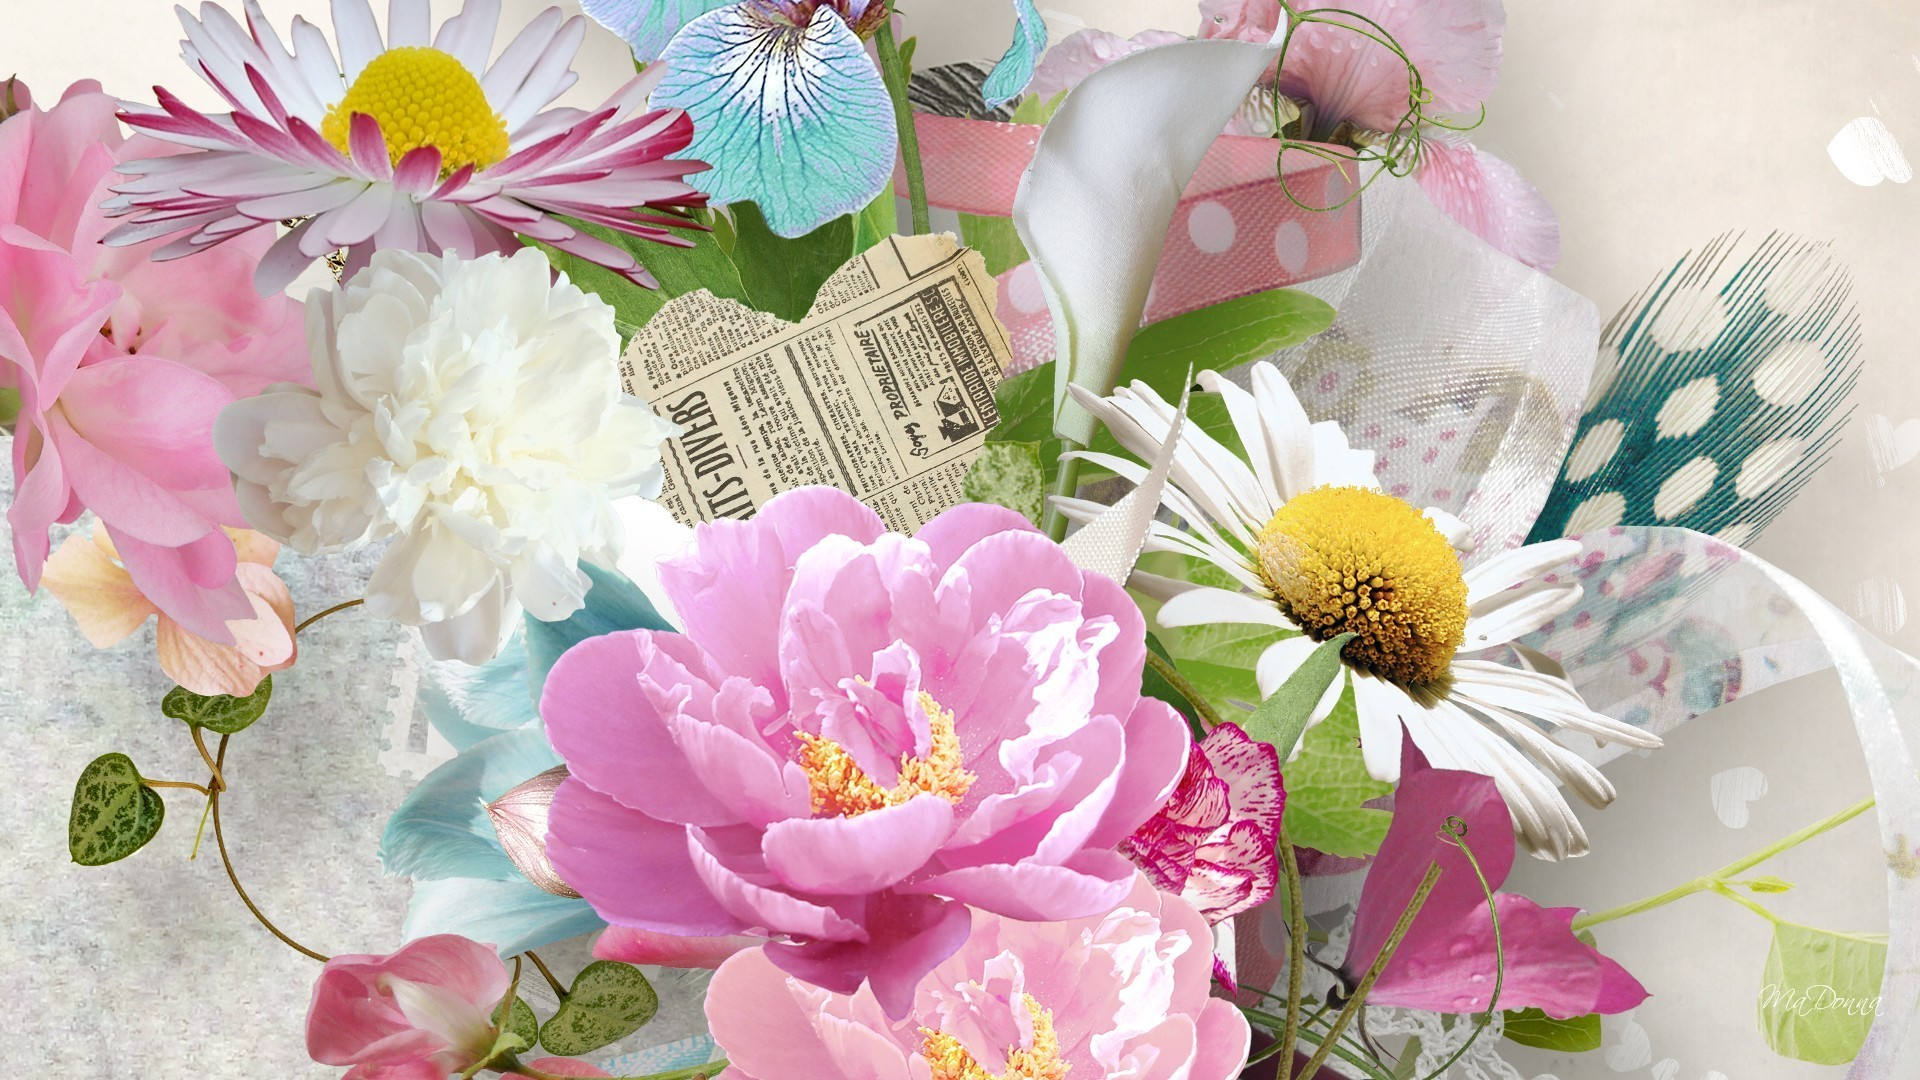 Soft Tag – Daisy Feathers Flowers Newspaper Pink Iris Floral Summer Ribbon  Peony Heart Soft Screen